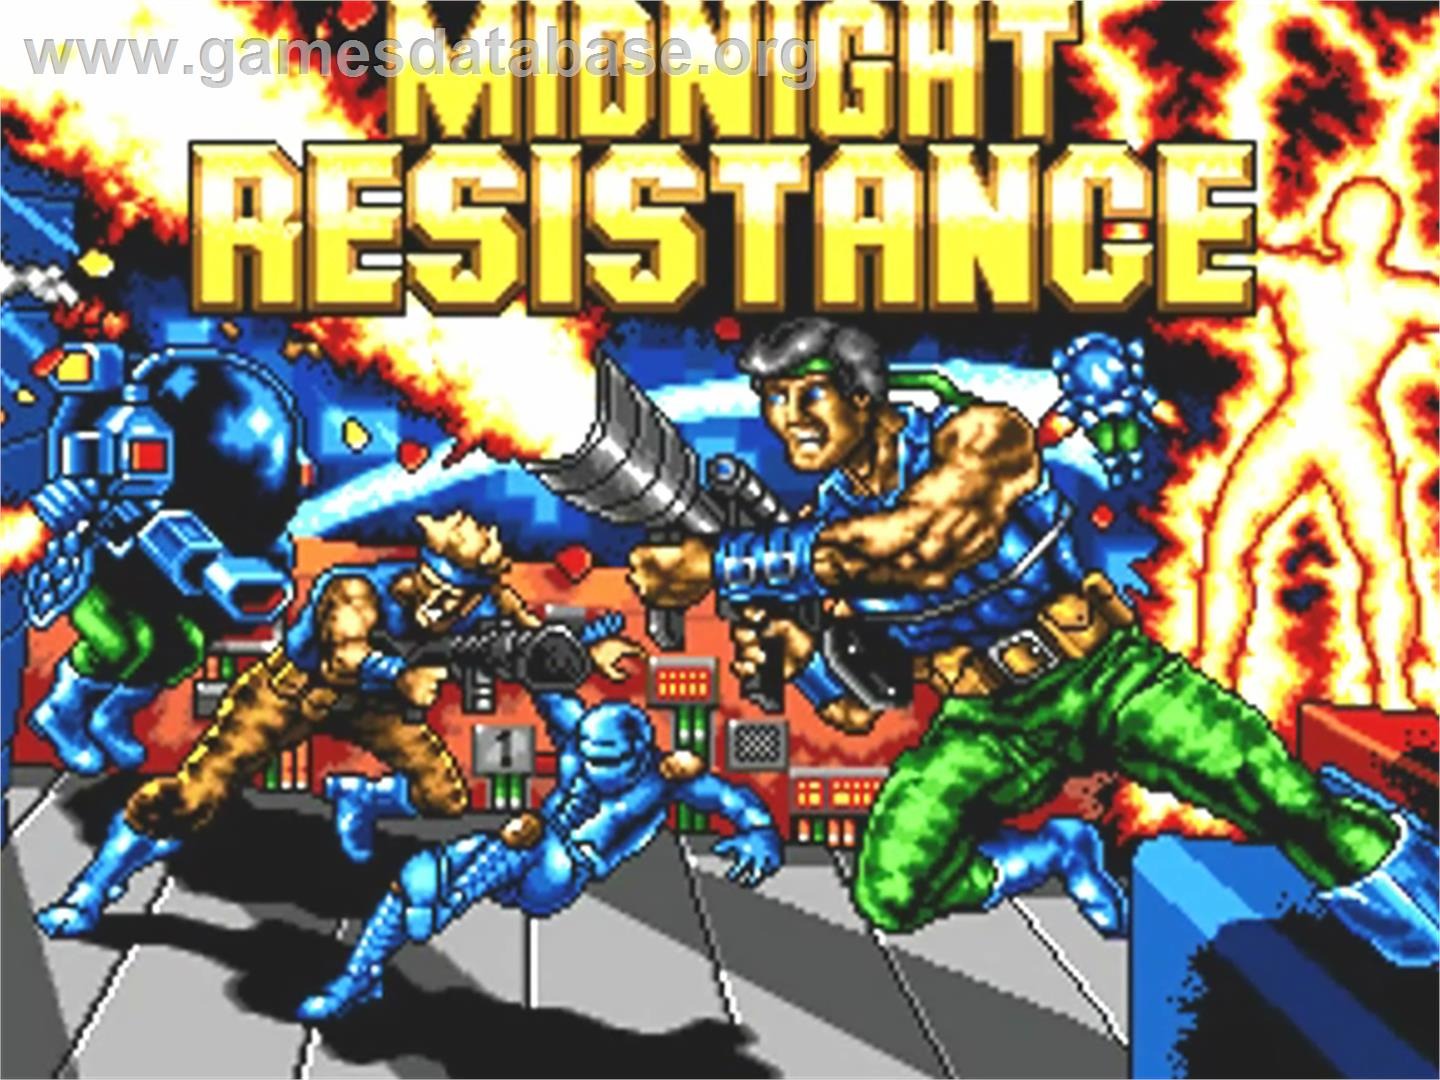 Midnight Resistance - Commodore Amiga - Artwork - Title Screen